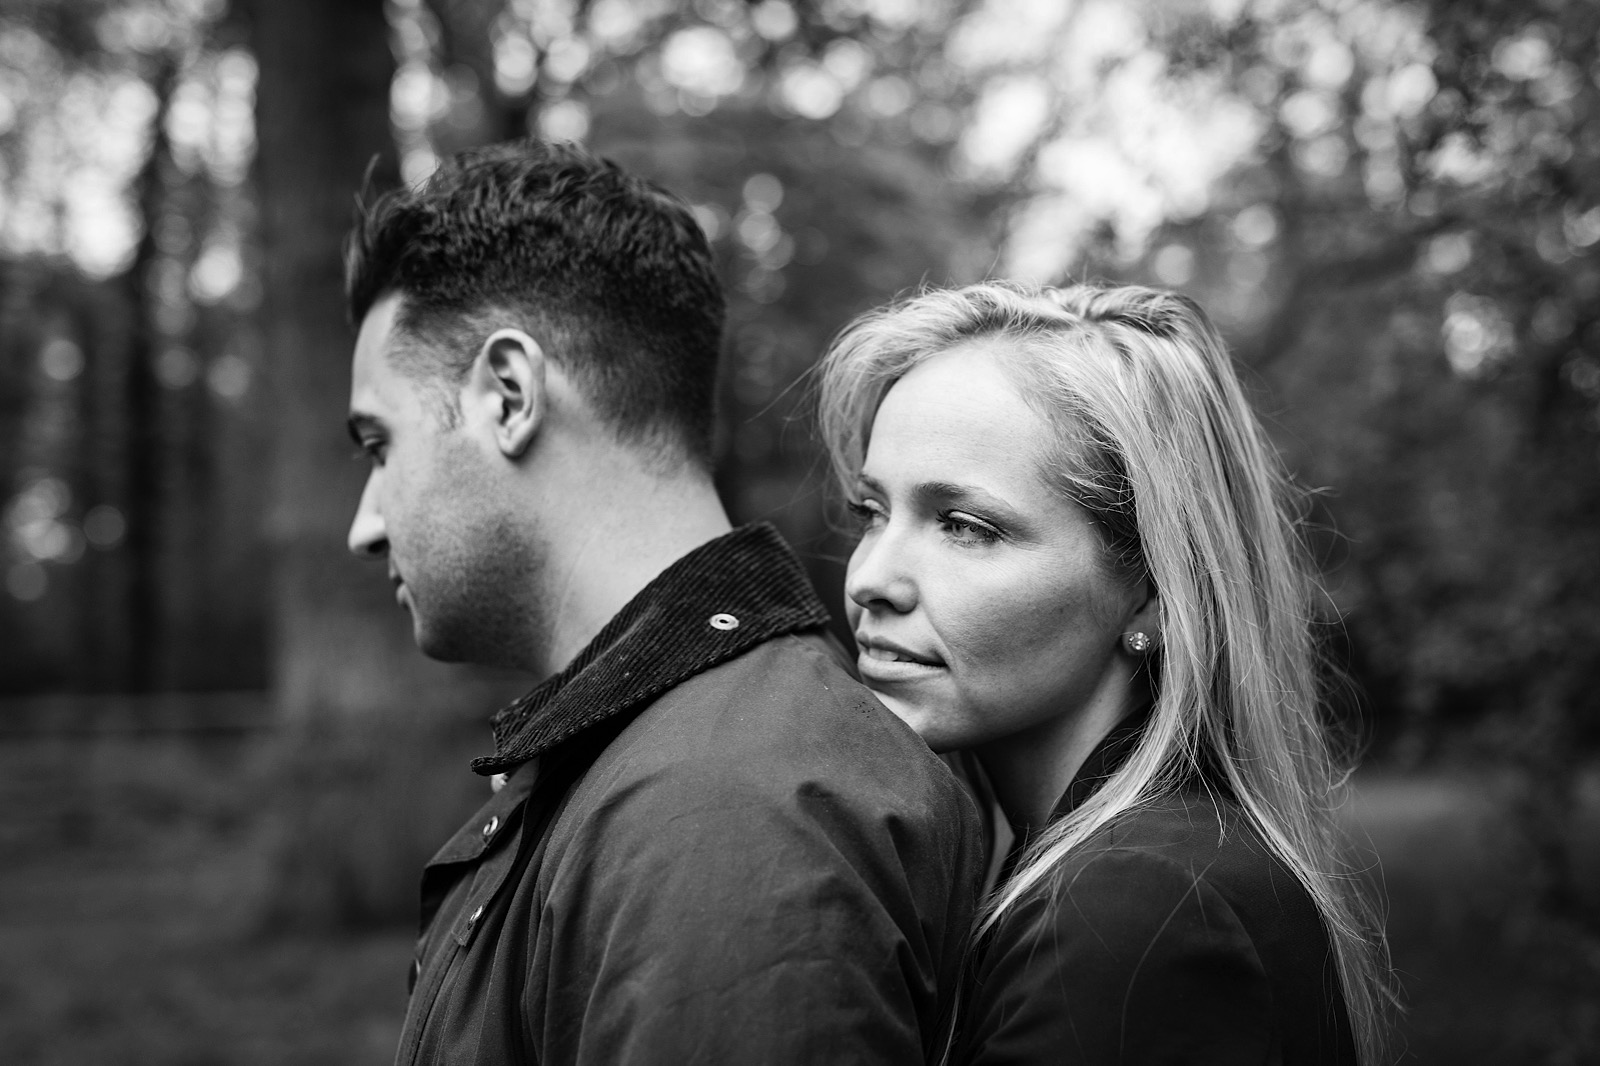 Black and white couples portrait in a forest in England